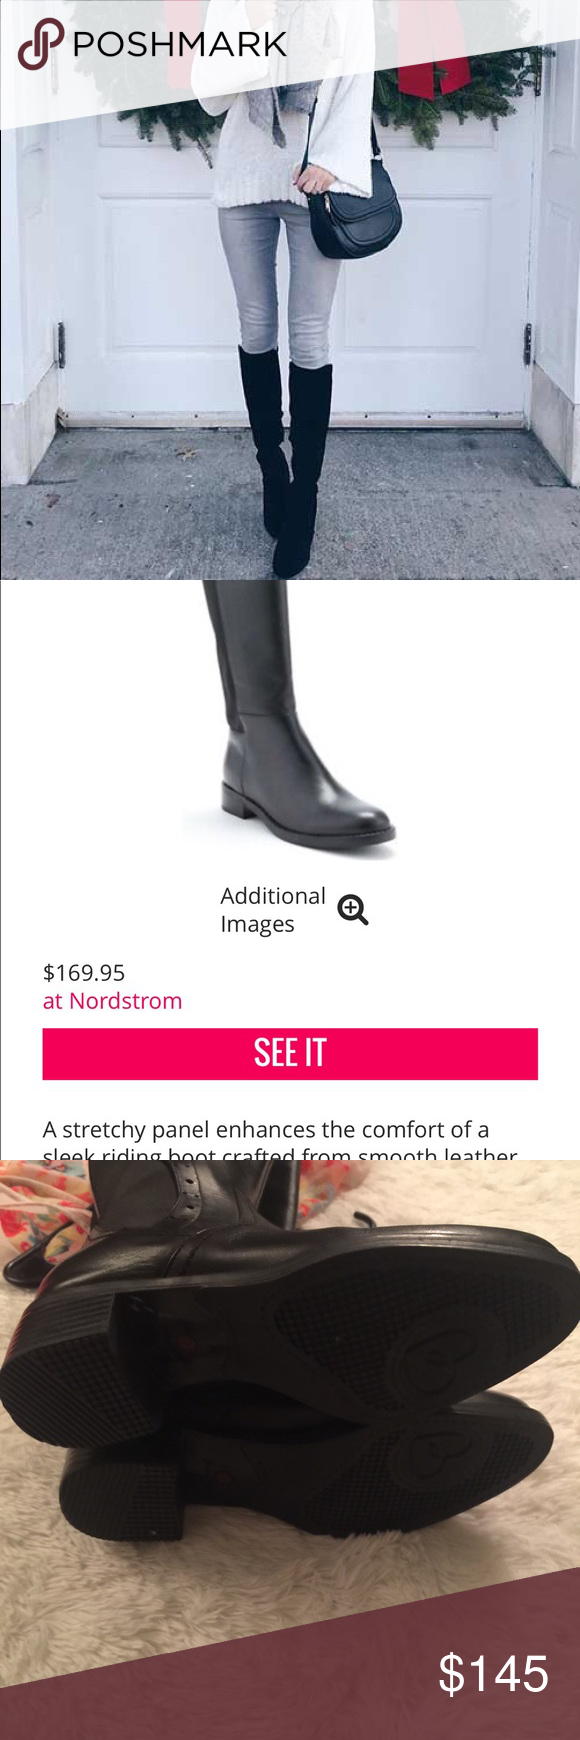 badb89e7bb4 Blondo Ellie Aqua Protect Leather Riding Boots! 1st pic shows outfit and style  idea!